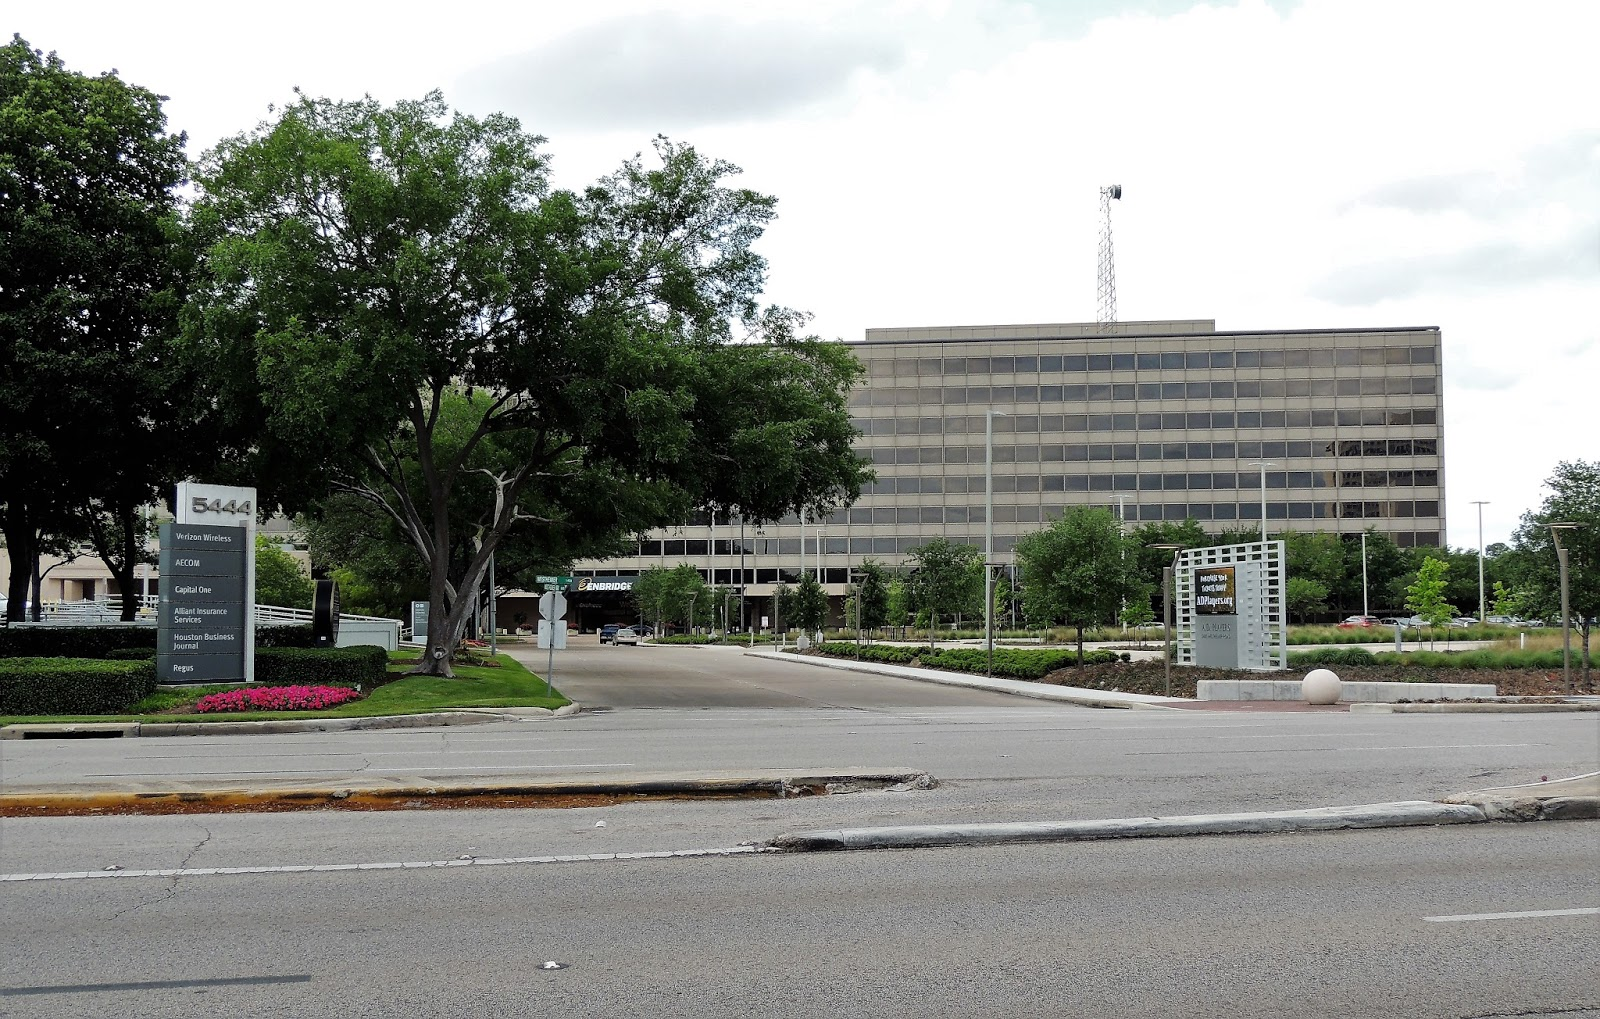 Houston Banking Amp Finance In Pics Capital One Bank 5444